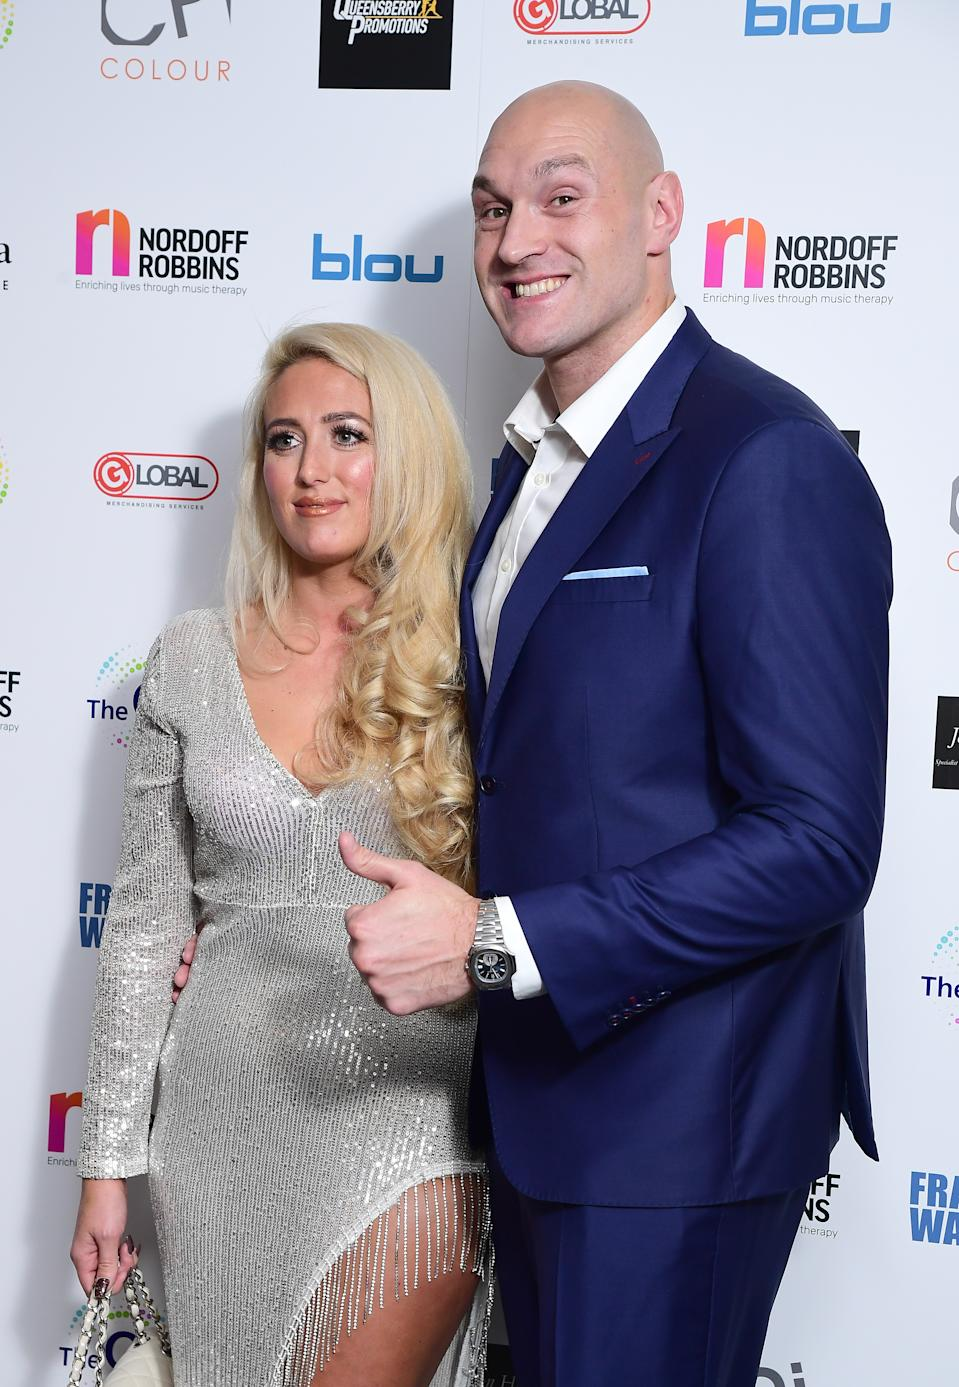 Paris and Tyson Fury attending the Nordoff Robbins Boxing Dinner held at the Hilton Hotel, London. (Photo by Ian West/PA Images via Getty Images)